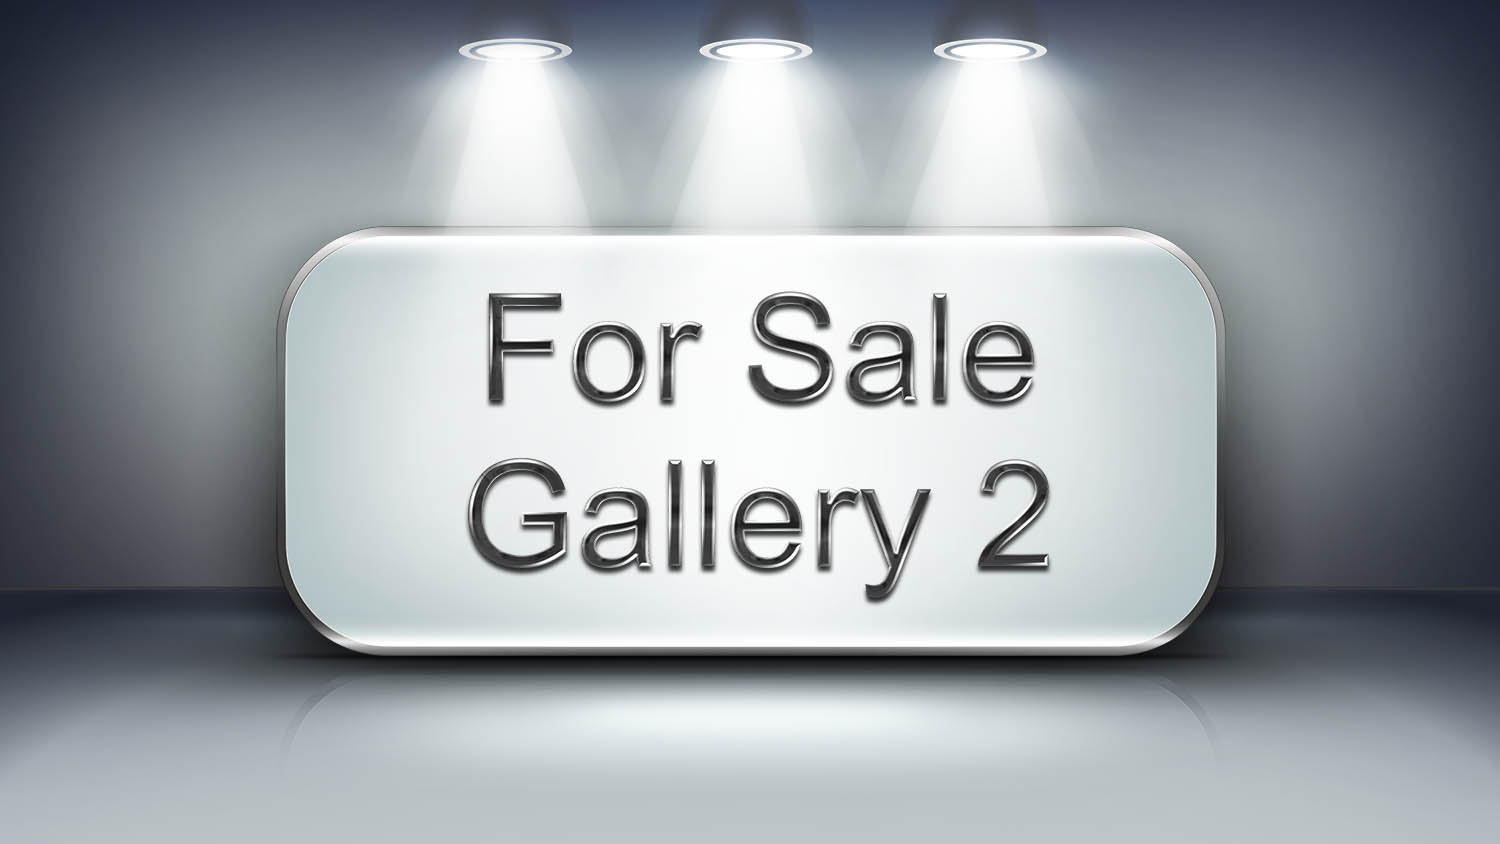 For Sale Gallery 2